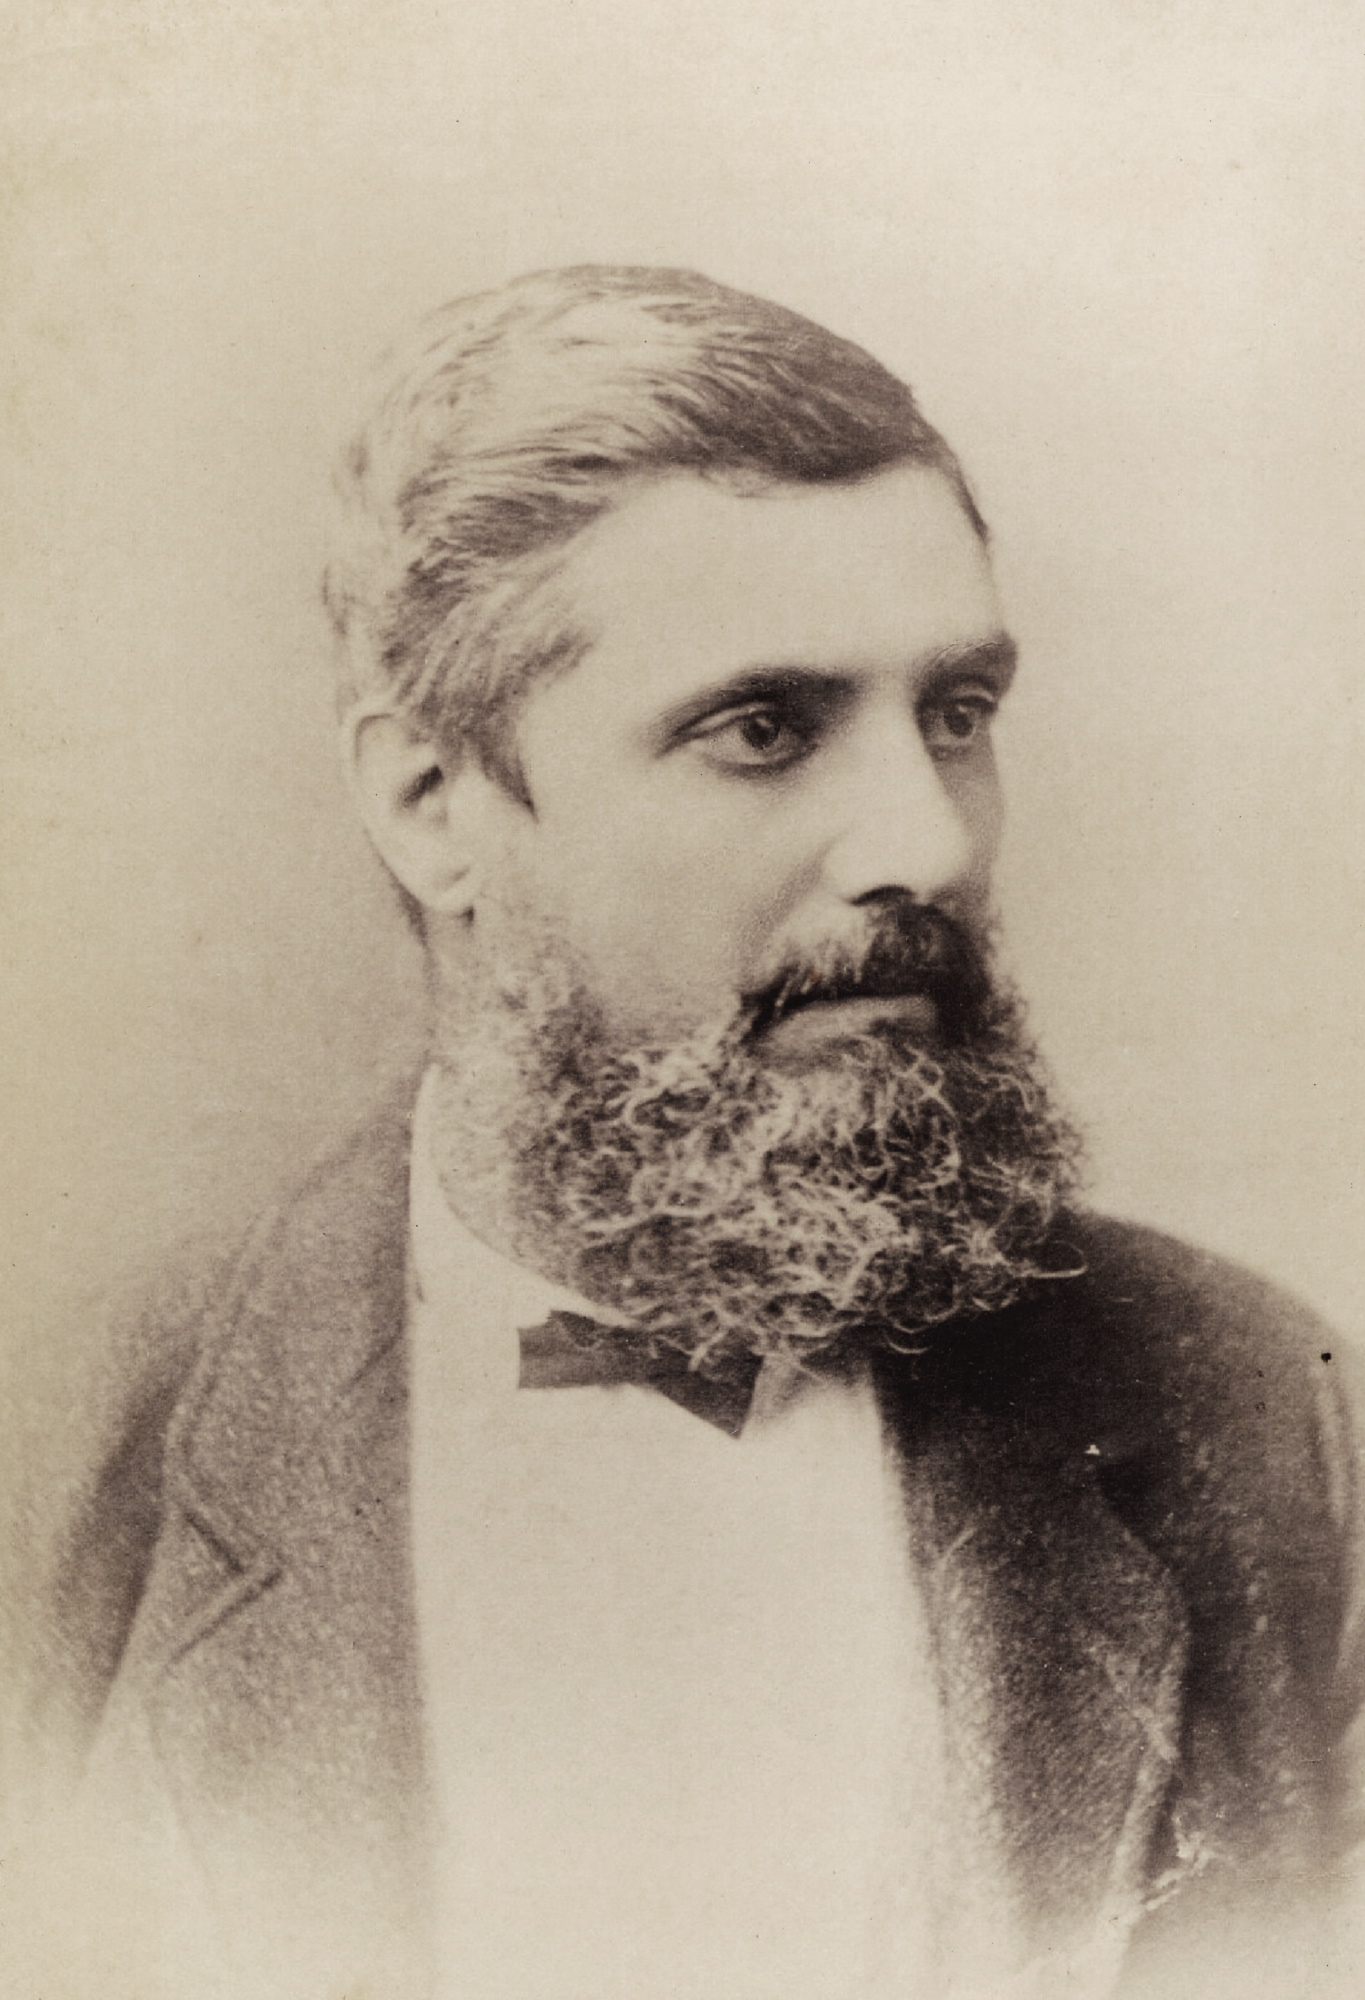 Bearded man, with bow tie and suit.